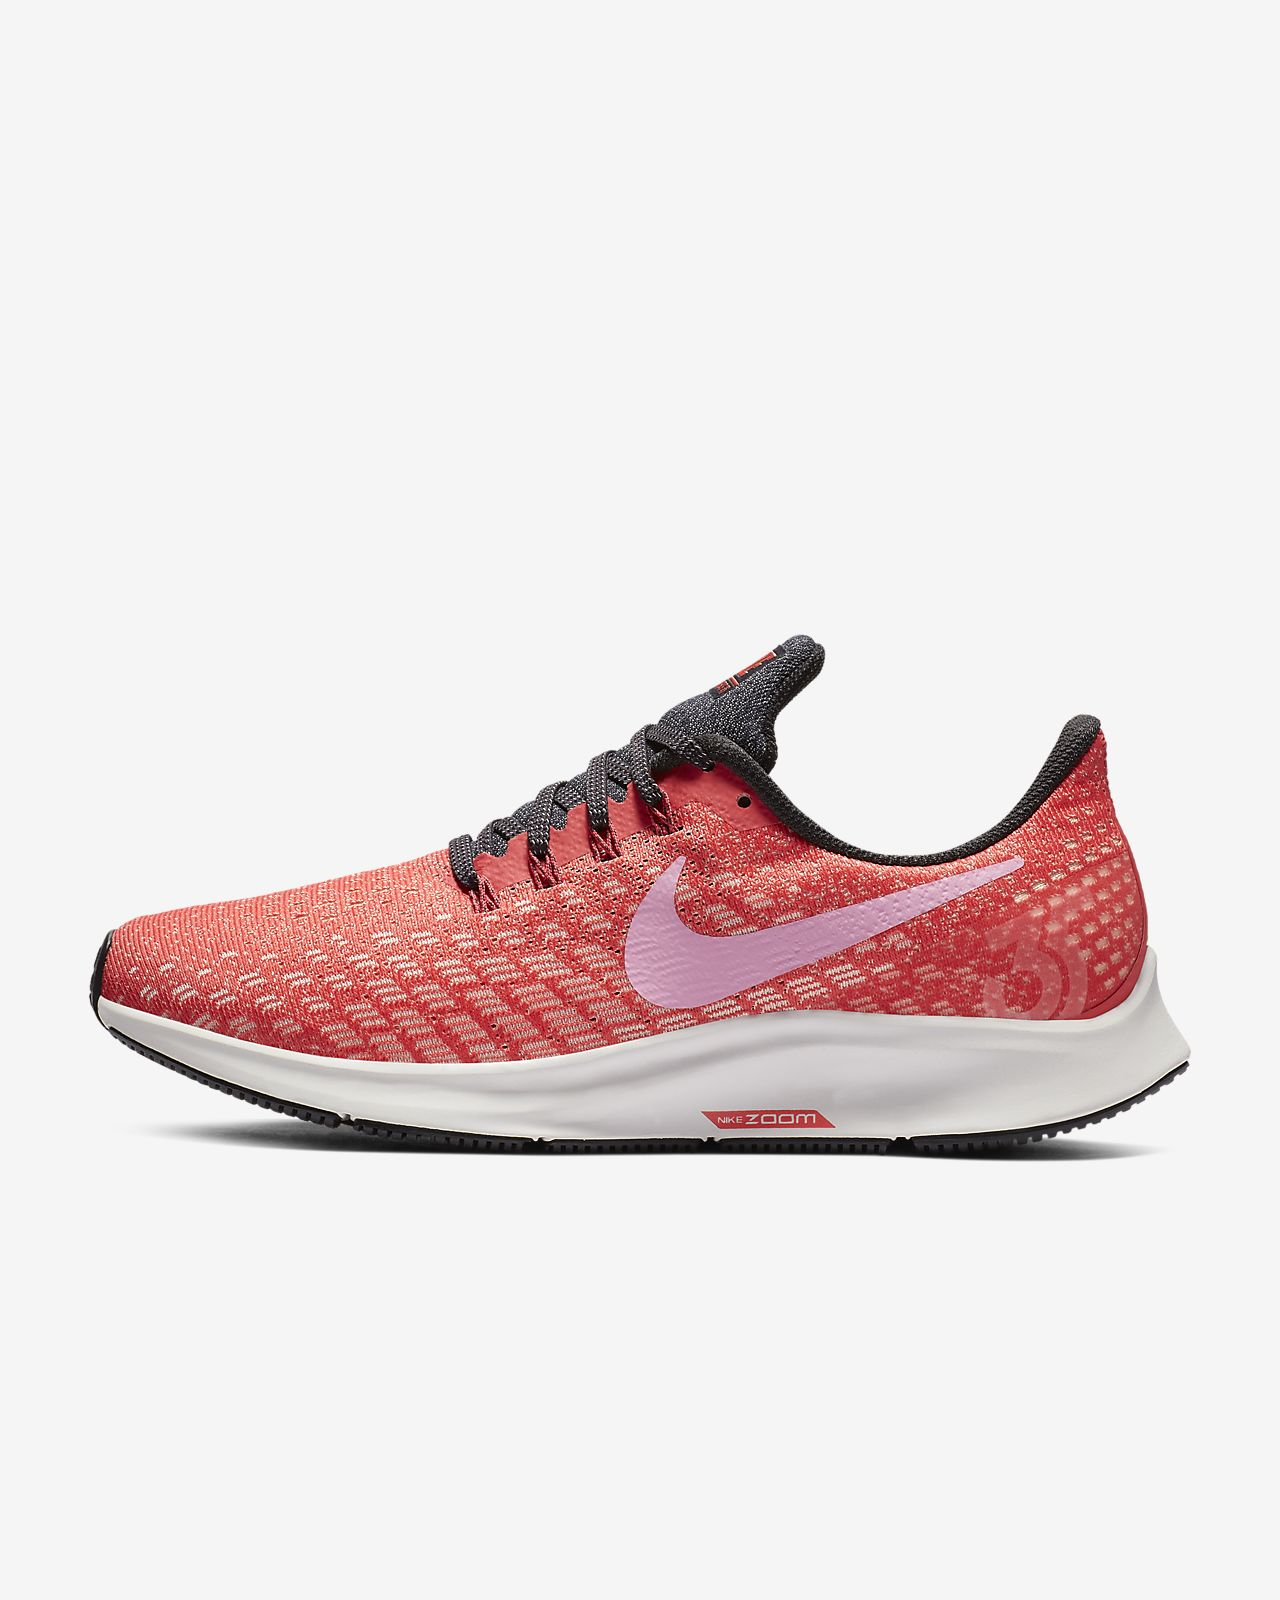 the best attitude 0fd53 8ed34 ... Nike Air Zoom Pegasus 35 Women s Running Shoe